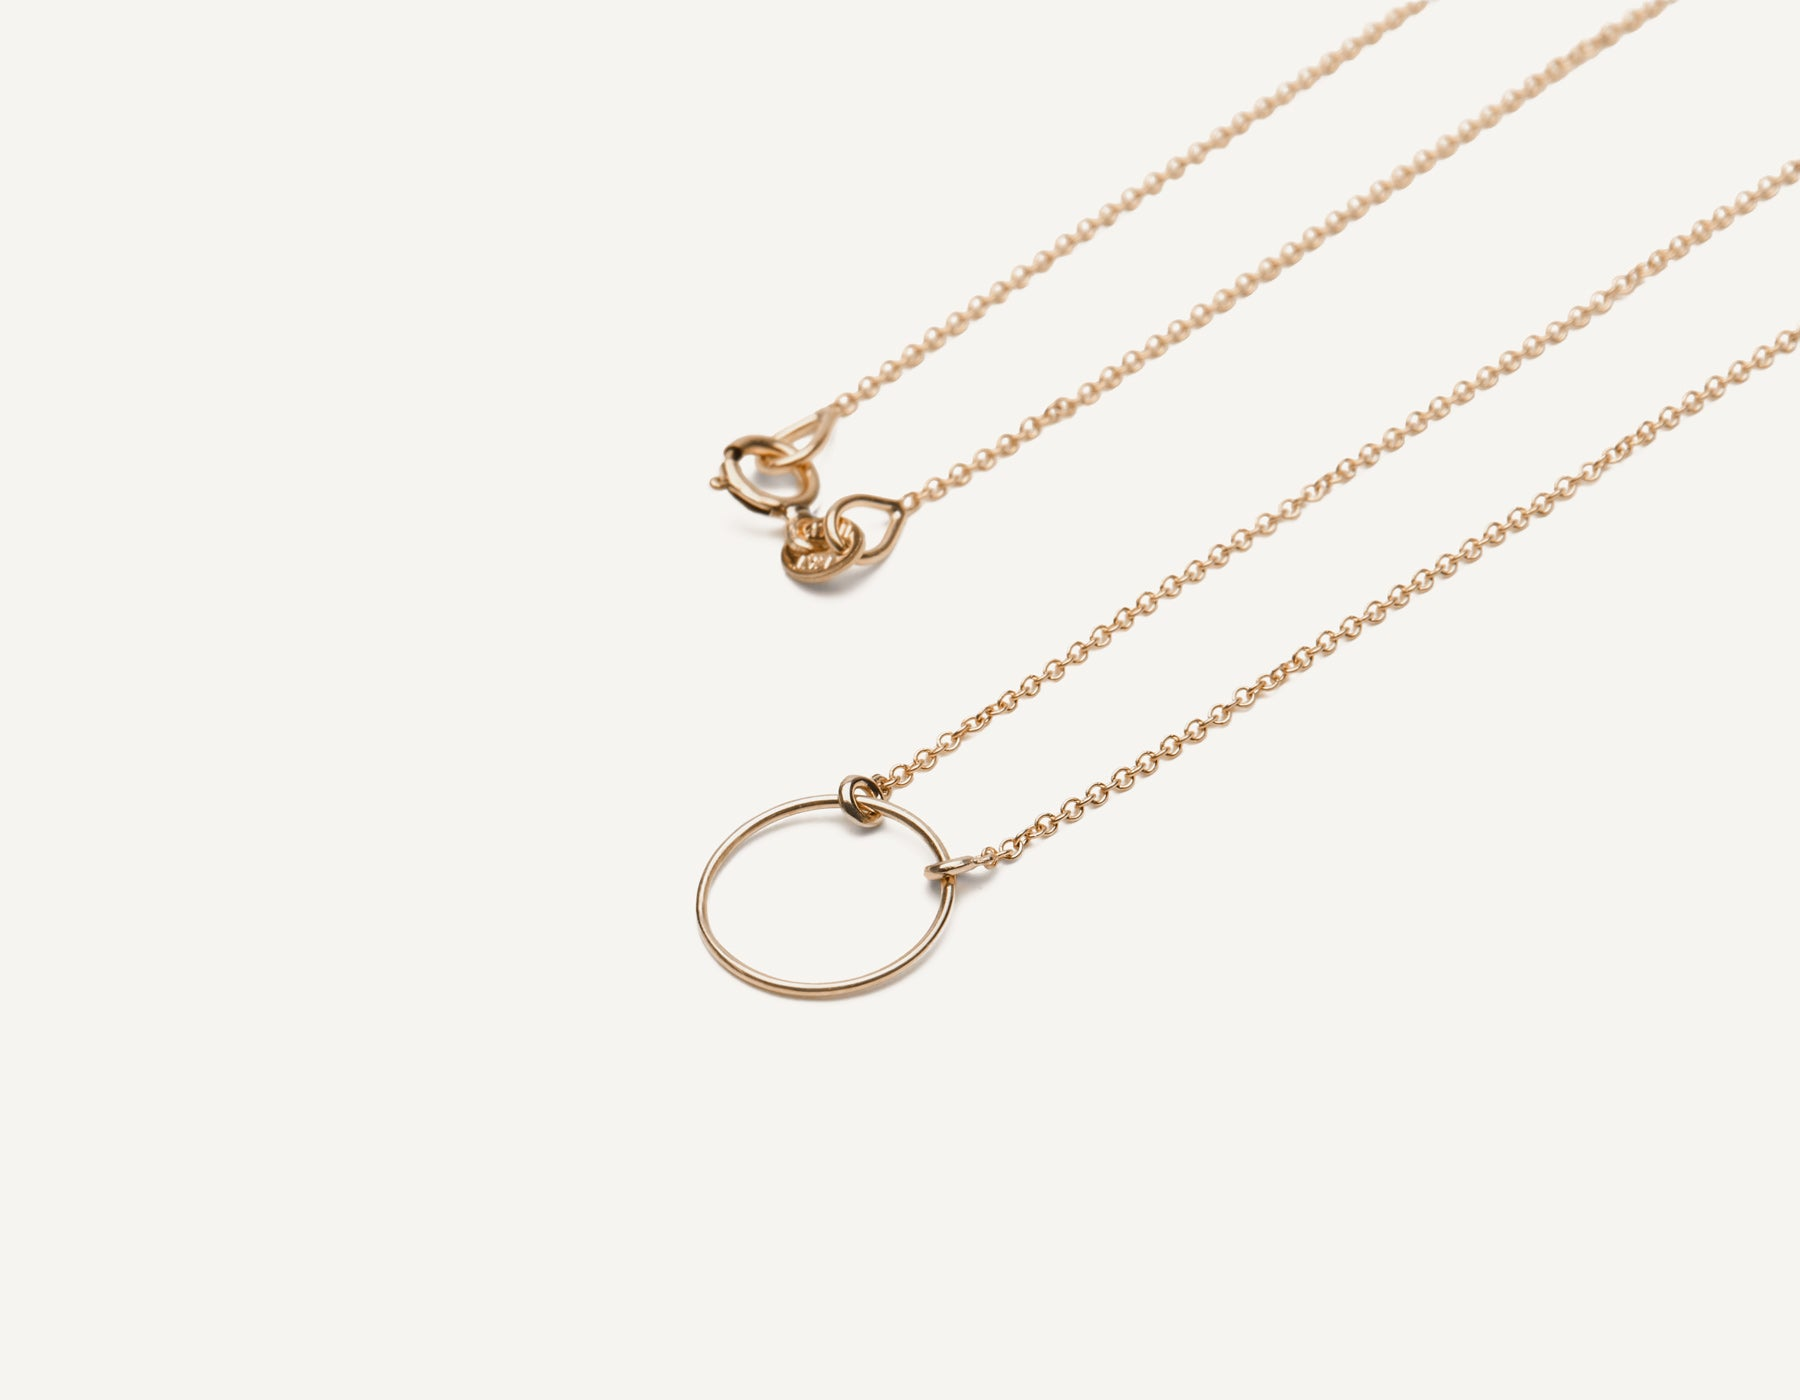 Delicate minimalist 14k solid gold wire Circle Necklace with spring ring clasp by Vrai & Oro handcrafted jewelry, 14K Rose Gold